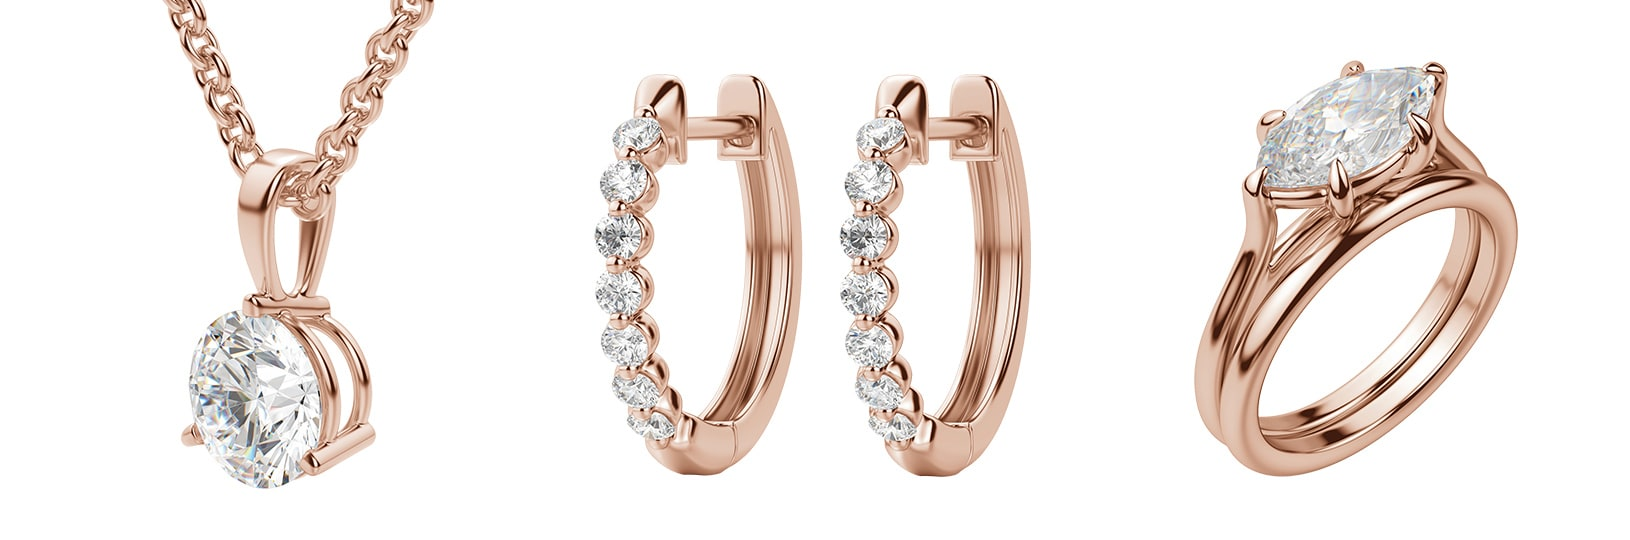 Rose gold fine jewelry & rose gold engagement rings